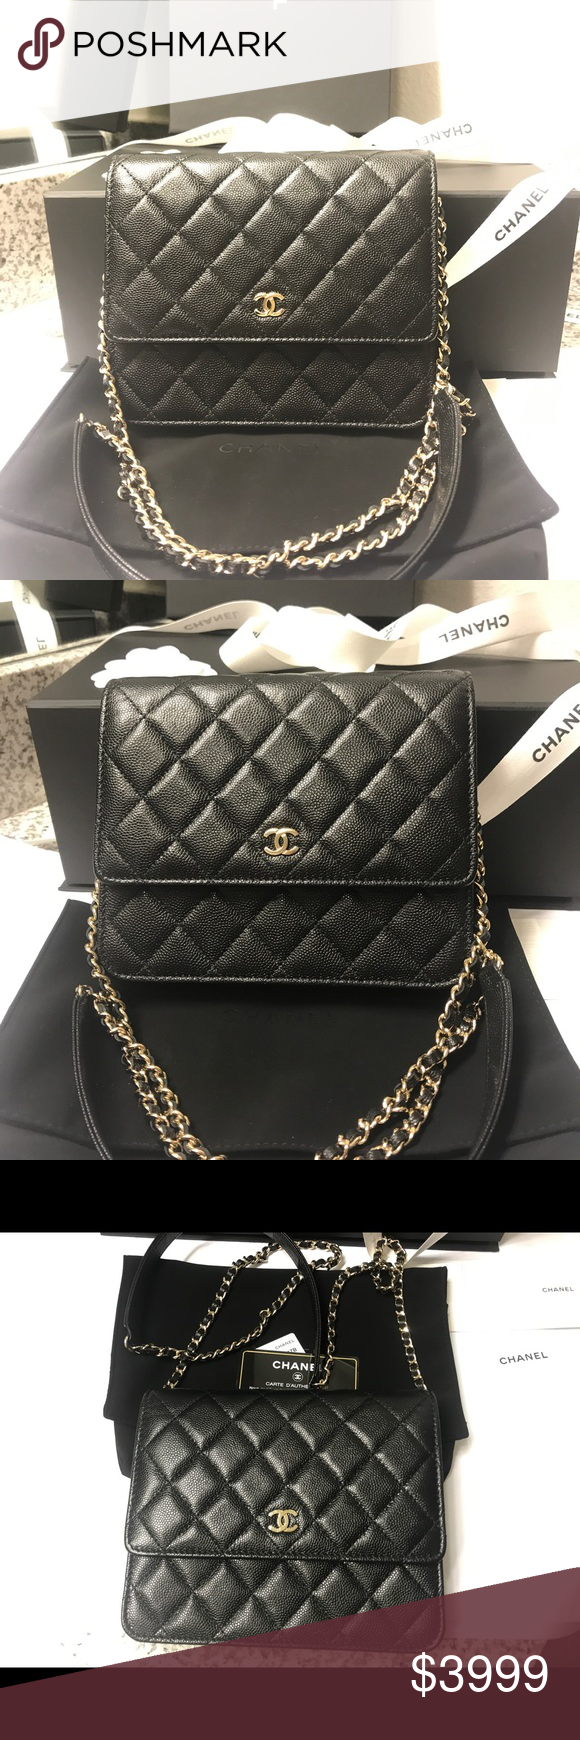 050c542ad000 NEW SQUARE WOC Authentic WOC (Wallet on chain) Newest addition to the CHANEL  classic